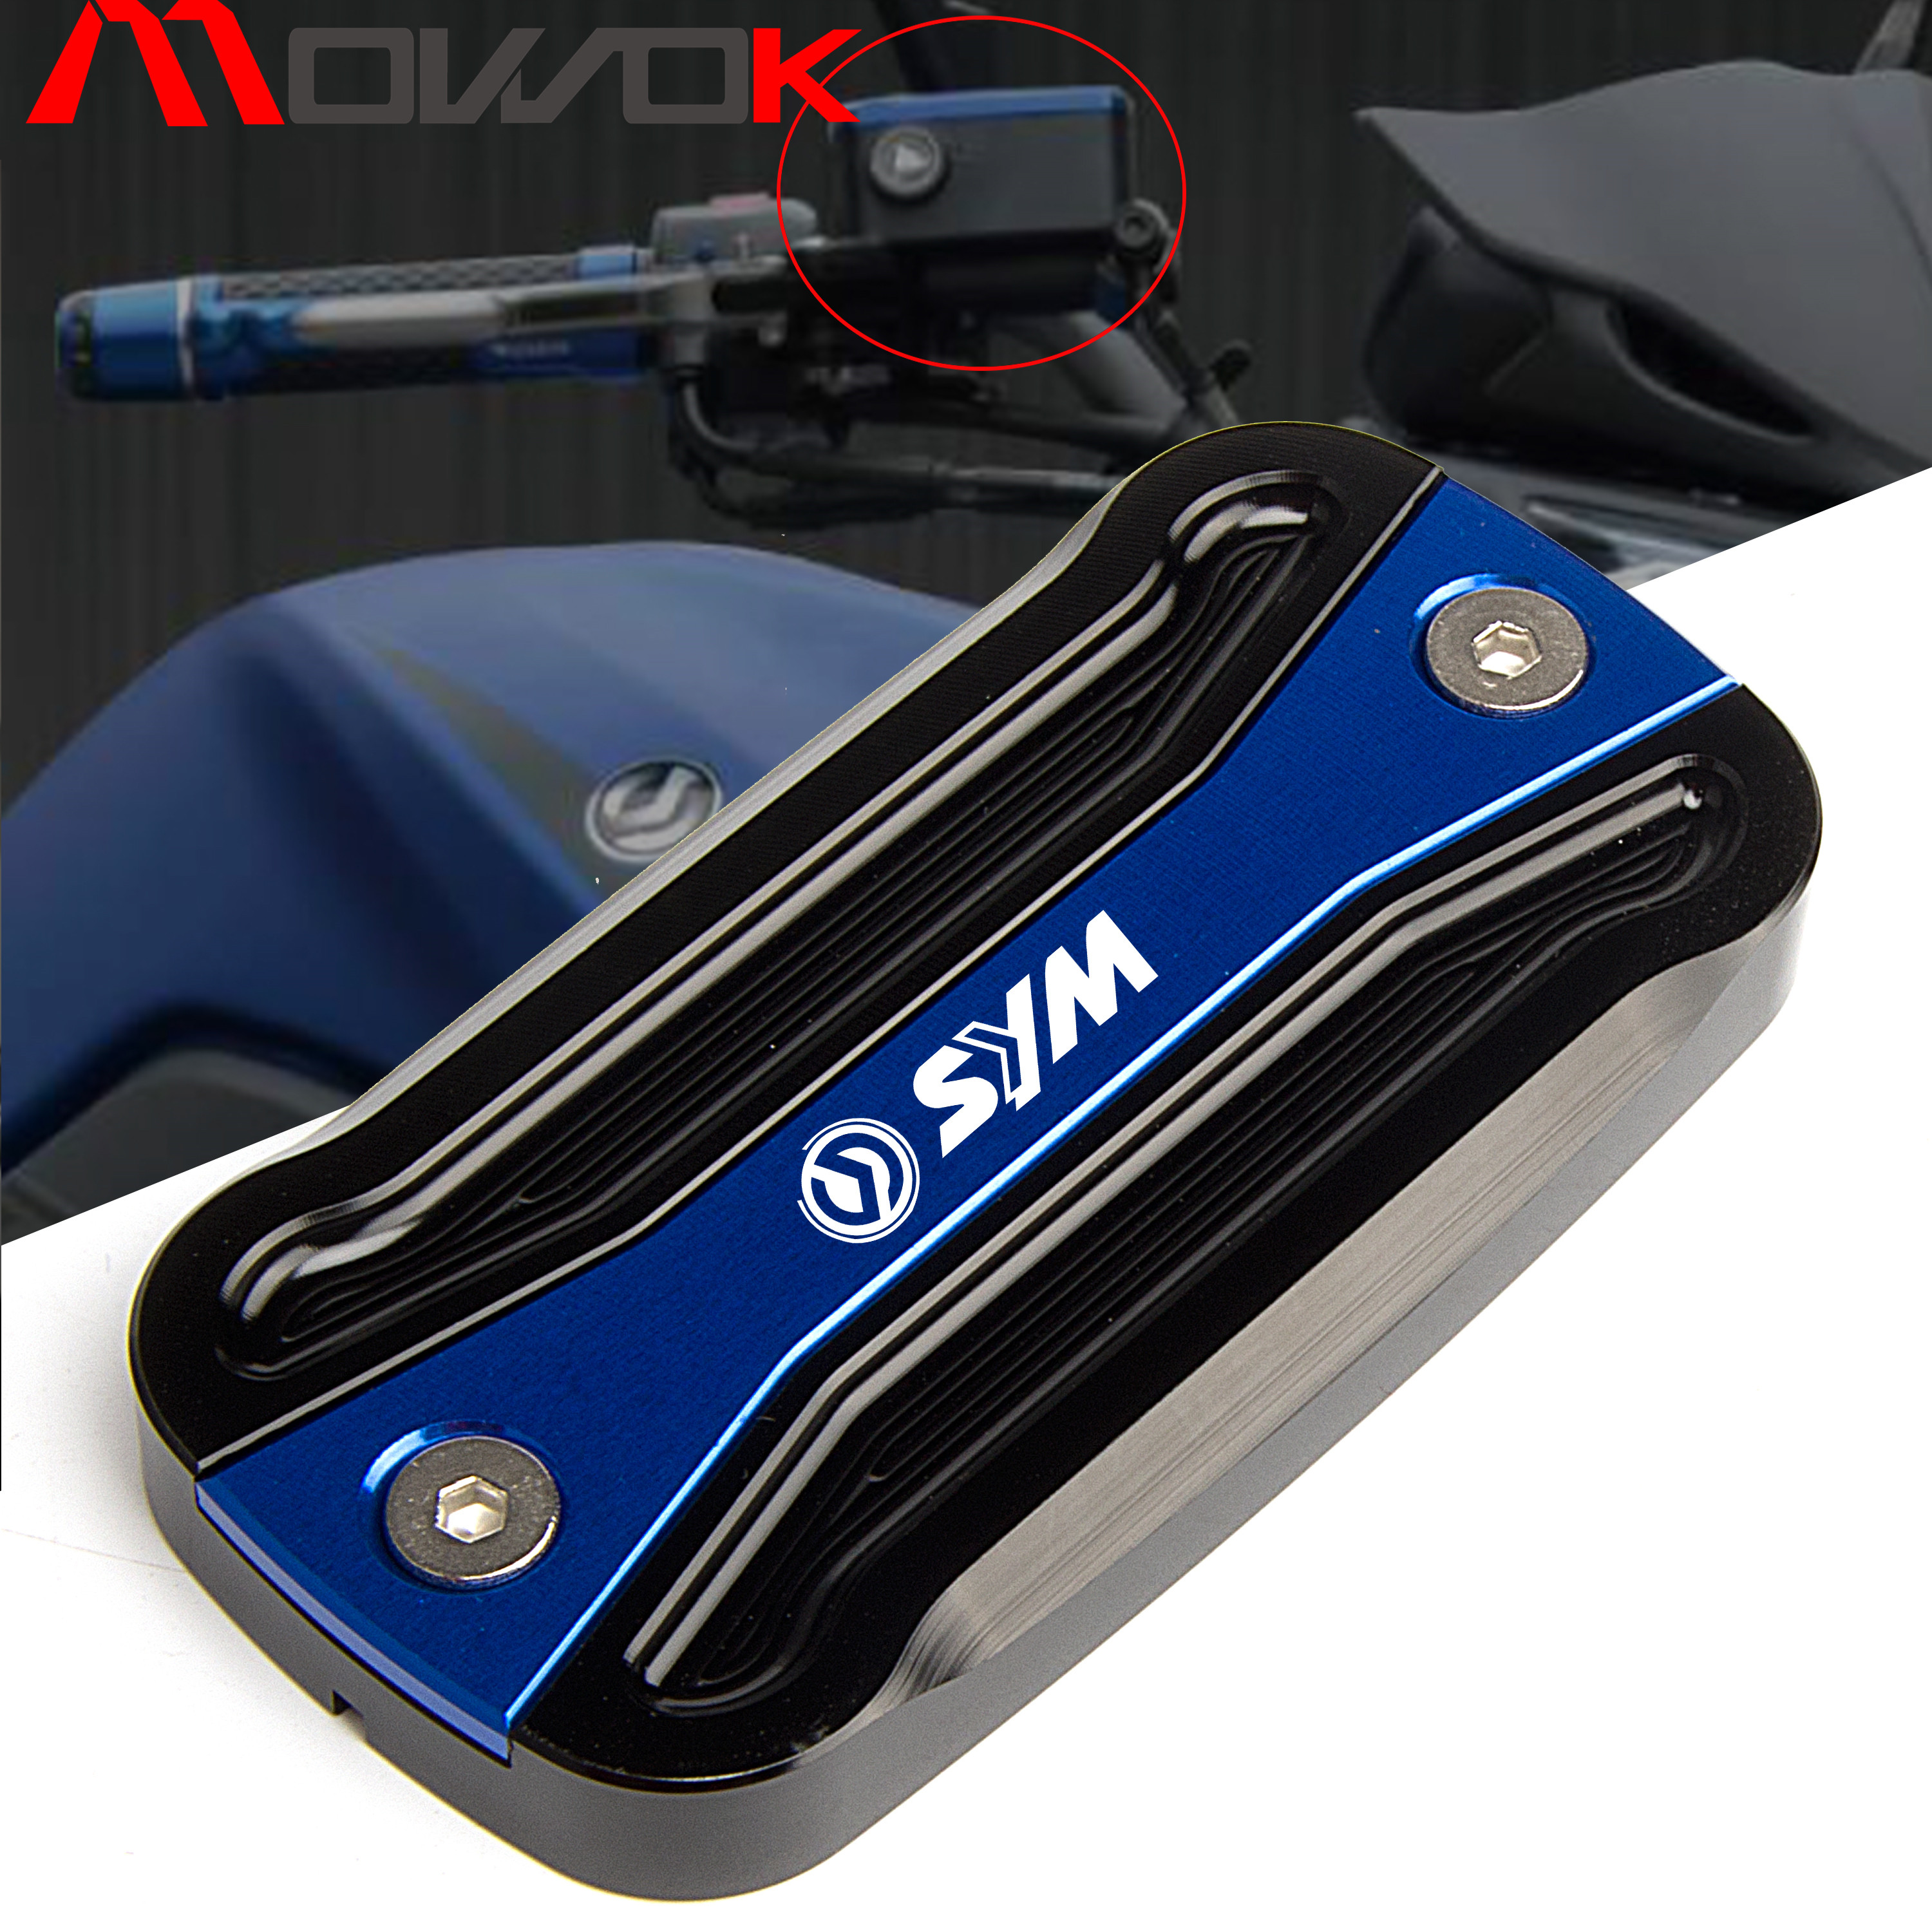 motorcycle accessories New sale Front Brake Fluid Reservoir Cover Cap For <font><b>SYM</b></font> T2 T3 <font><b>MAXSYM</b></font> 400 <font><b>400i</b></font> 600 600i image